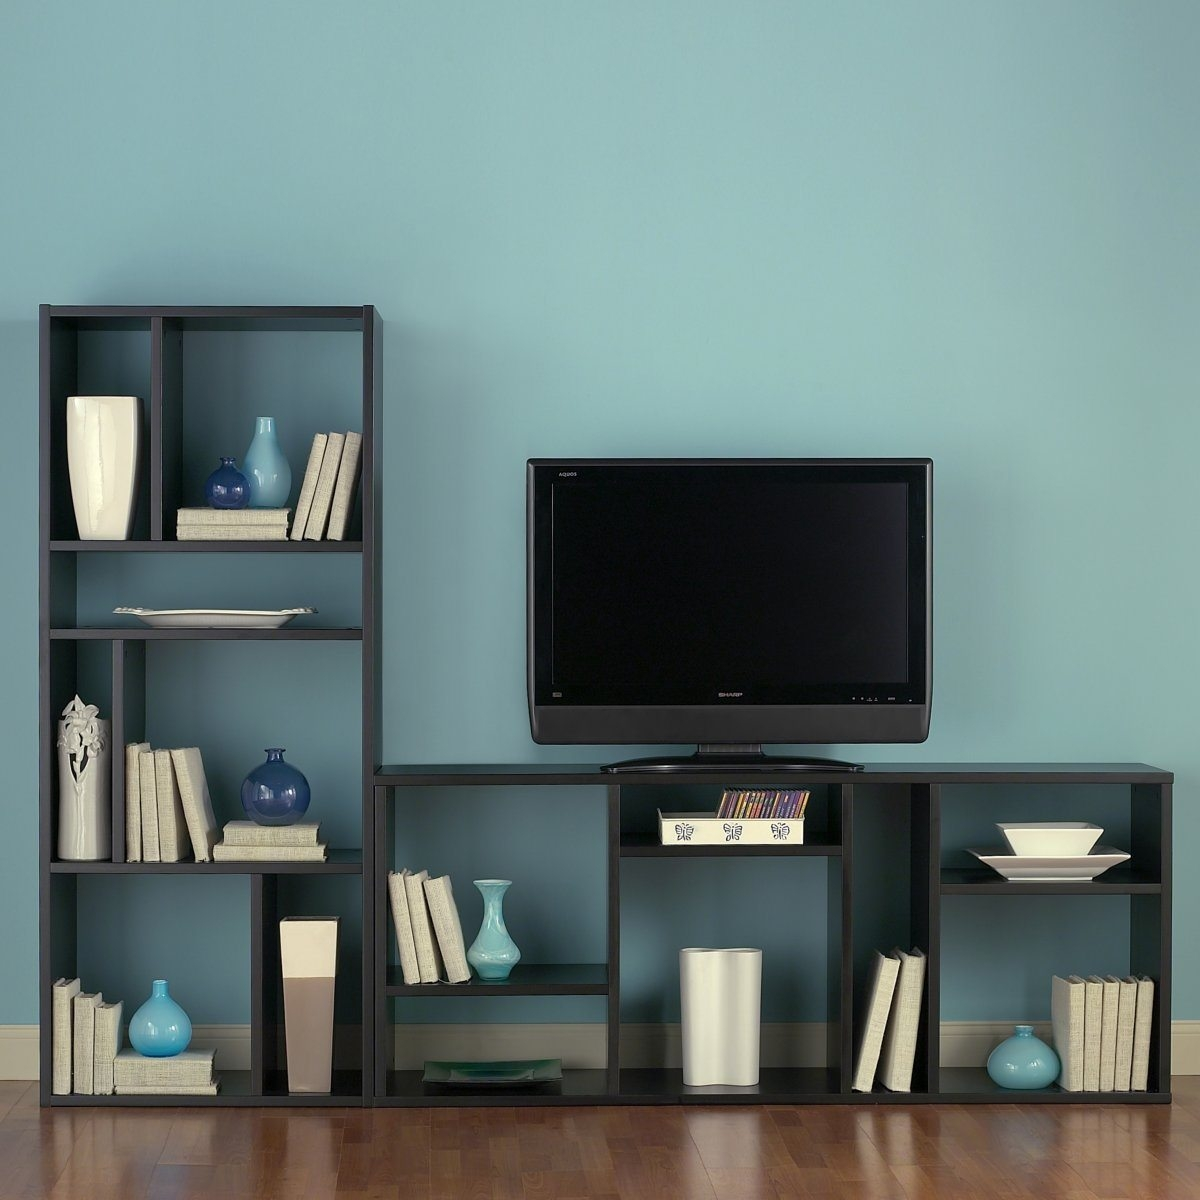 Tv Stands Inspire Black And White Tv Stand Bookshelf Design Ideas For Tv Unit With Bookcase (View 11 of 15)